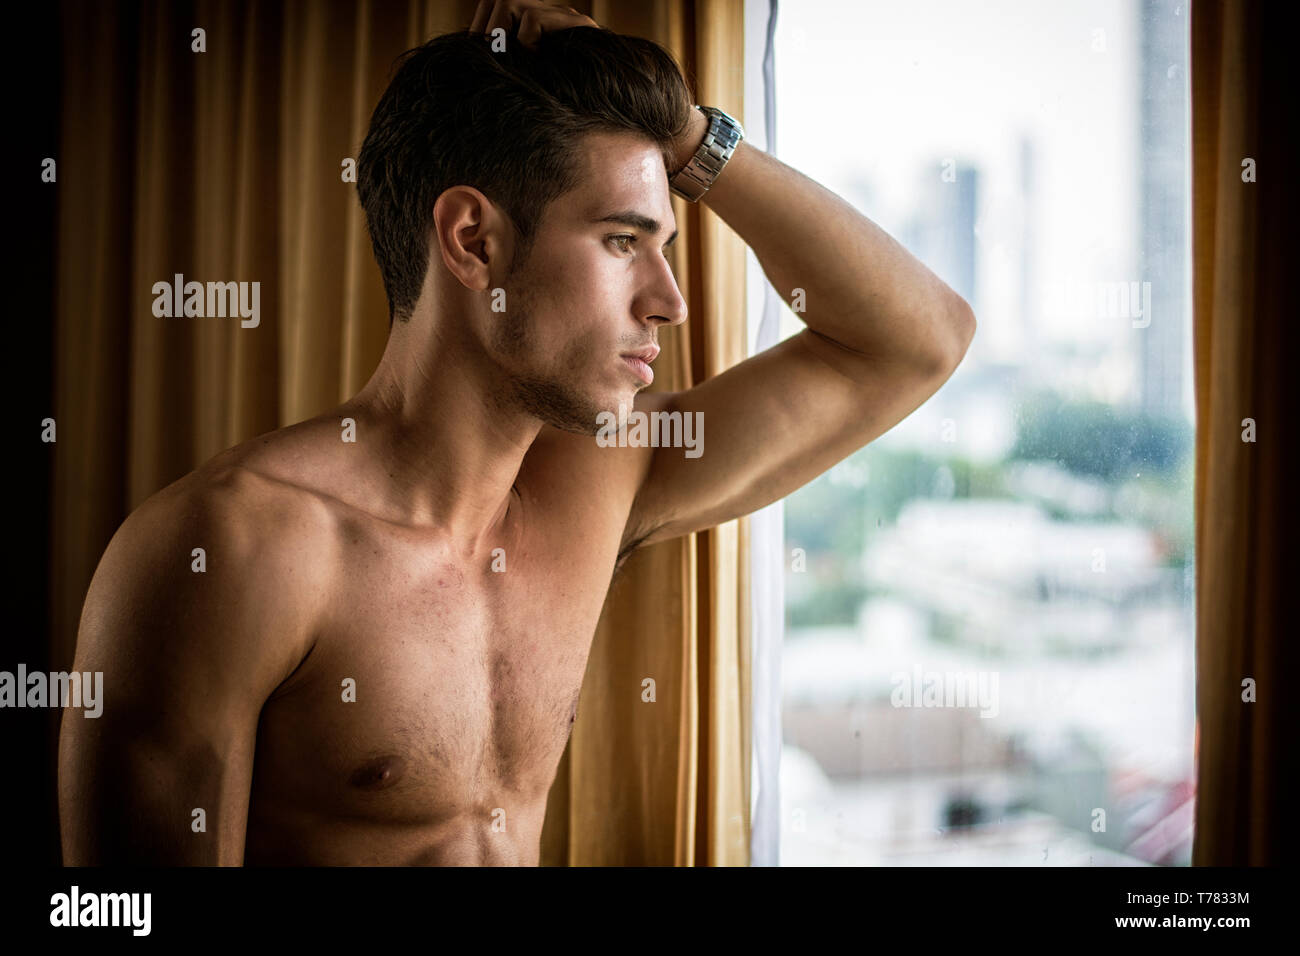 Sexy handsome young man standing shirtless in his bedroom next to window curtains Stock Photo